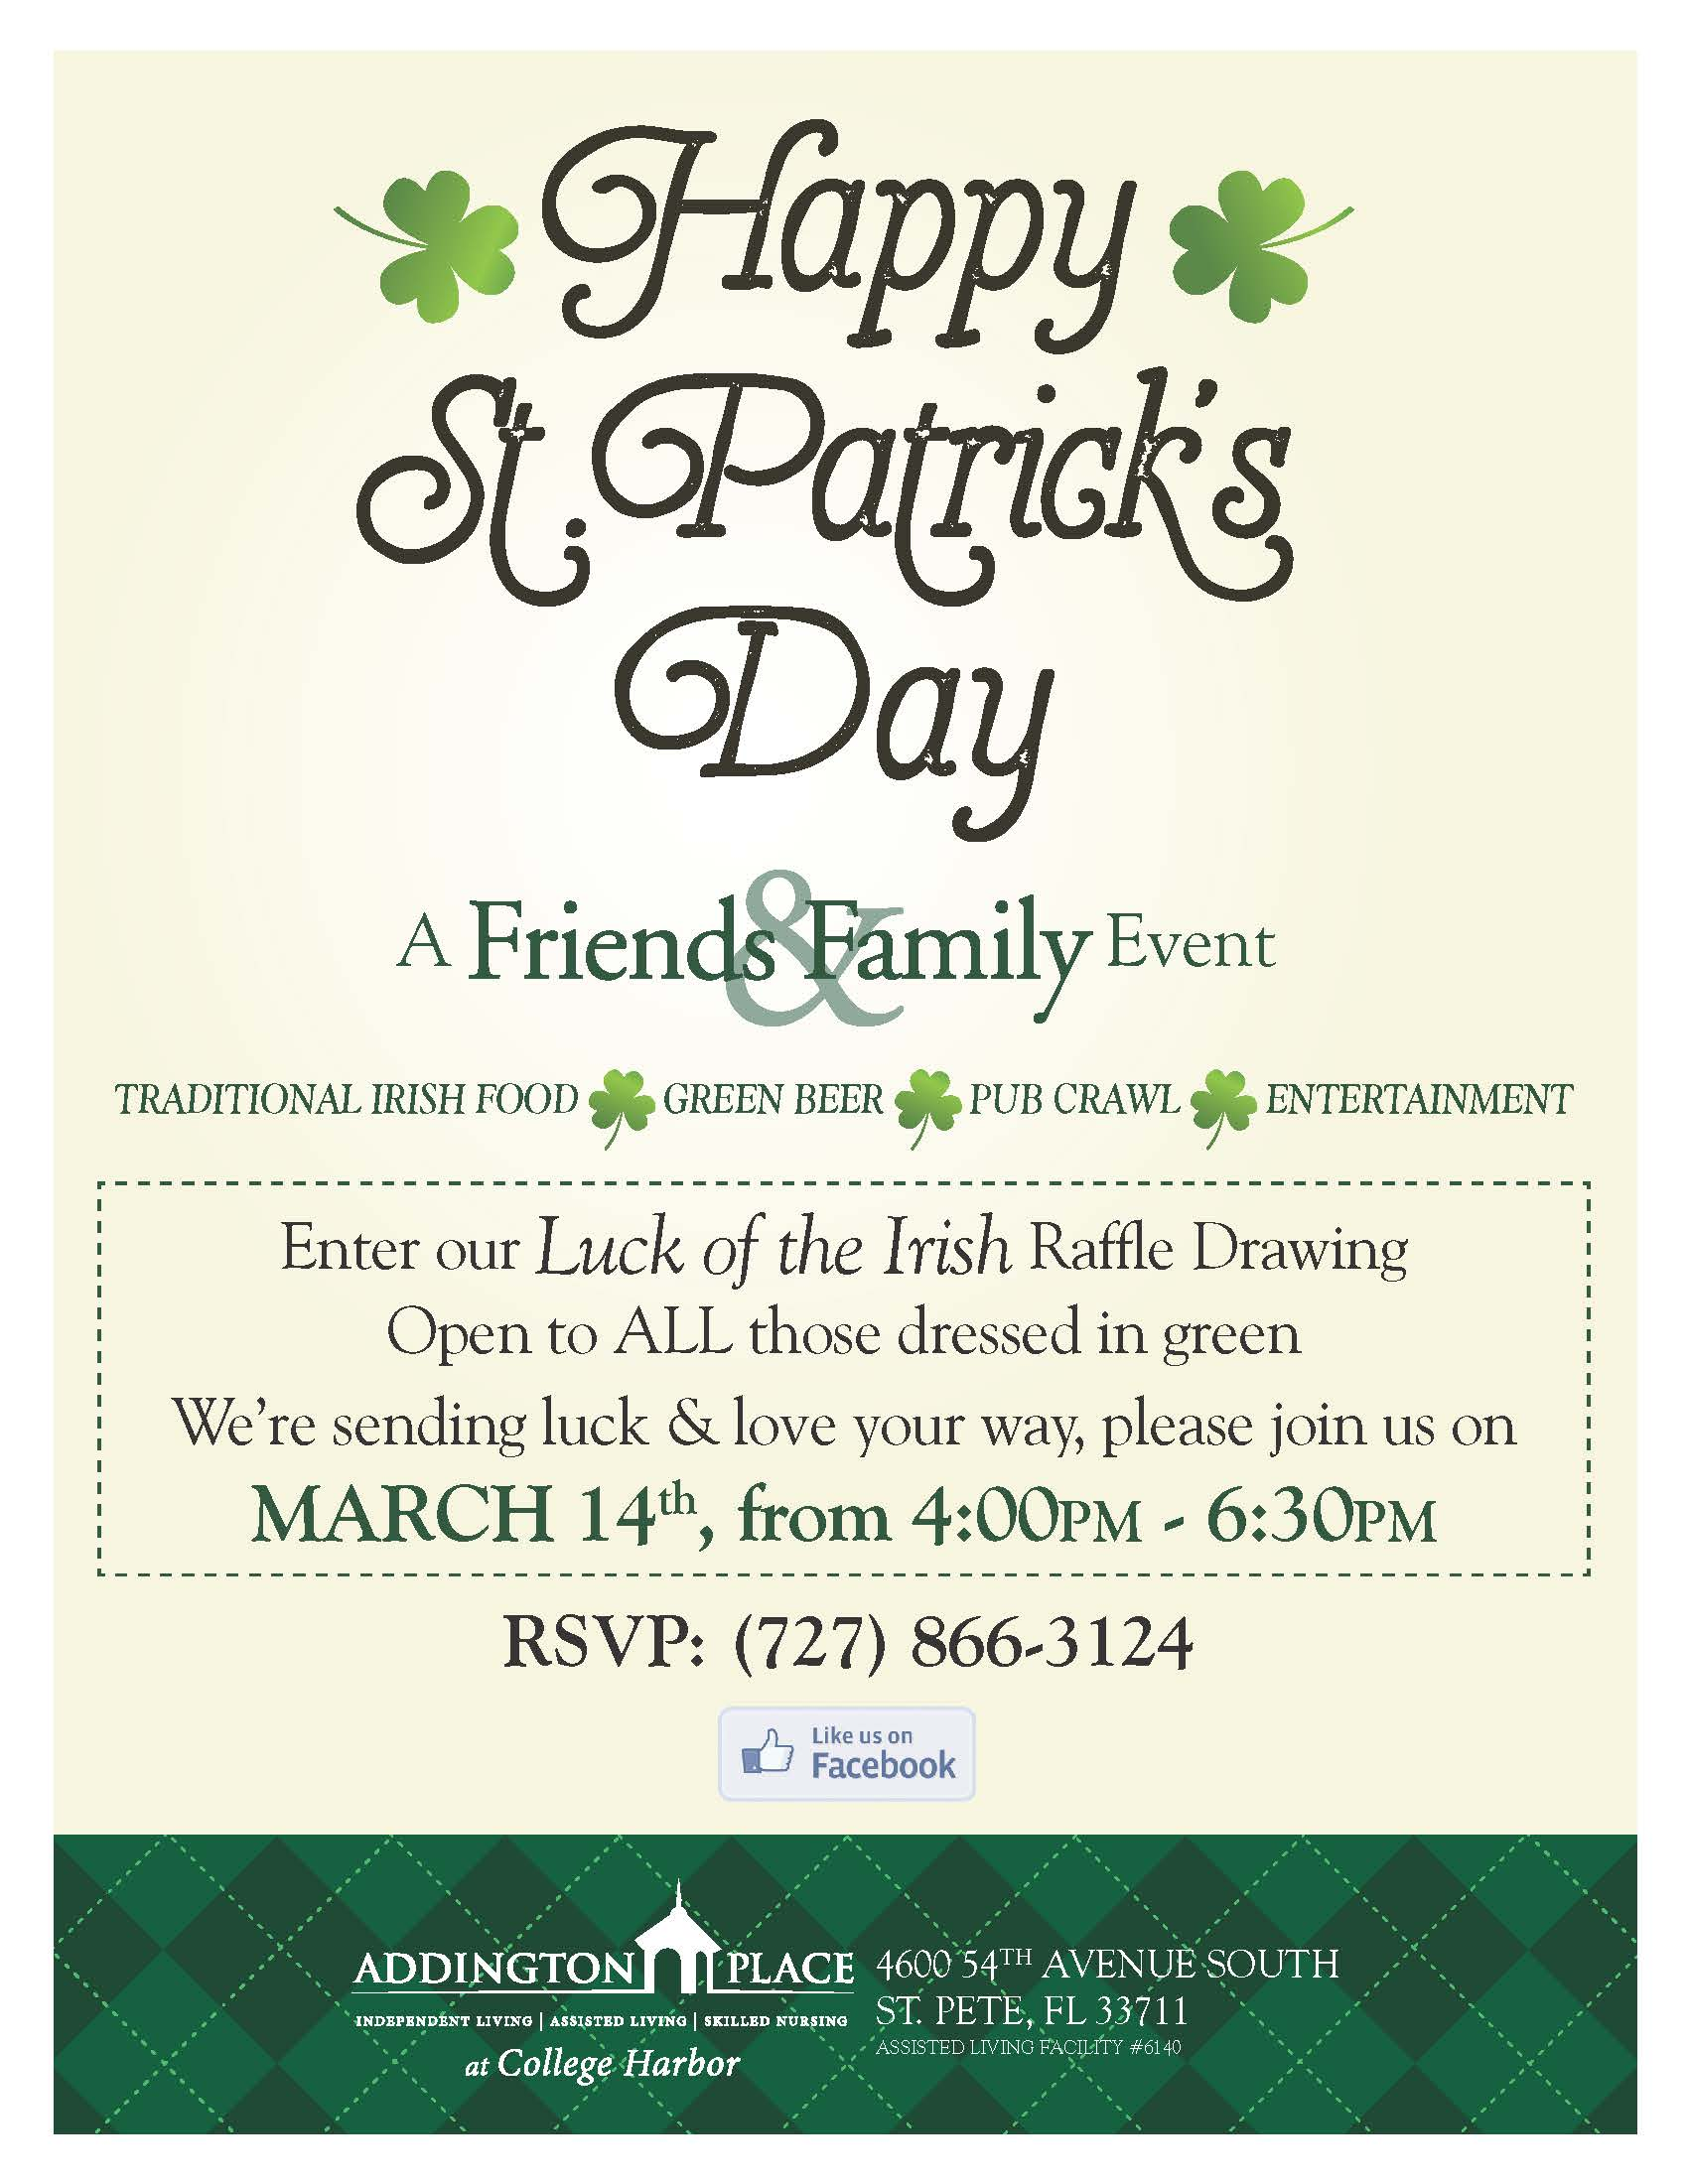 St. Patrick\'s Day Celebration | Addington Place at College Harbor